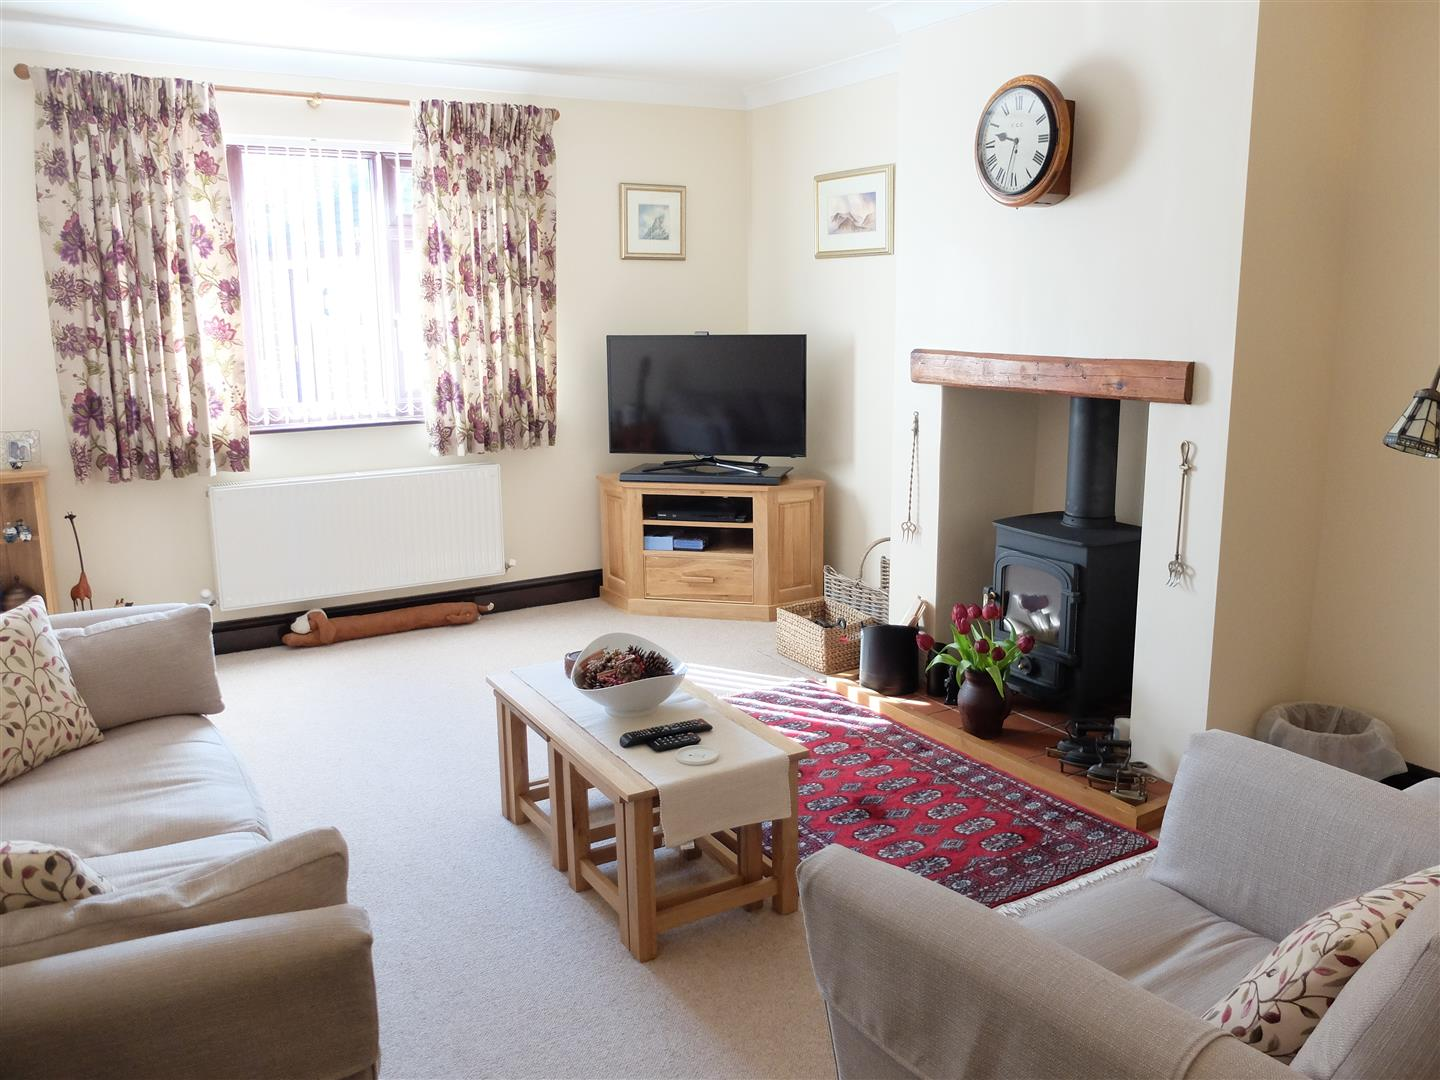 2 Bedrooms Bungalow - Semi Detached On Sale 2 Barrock Close Carlisle